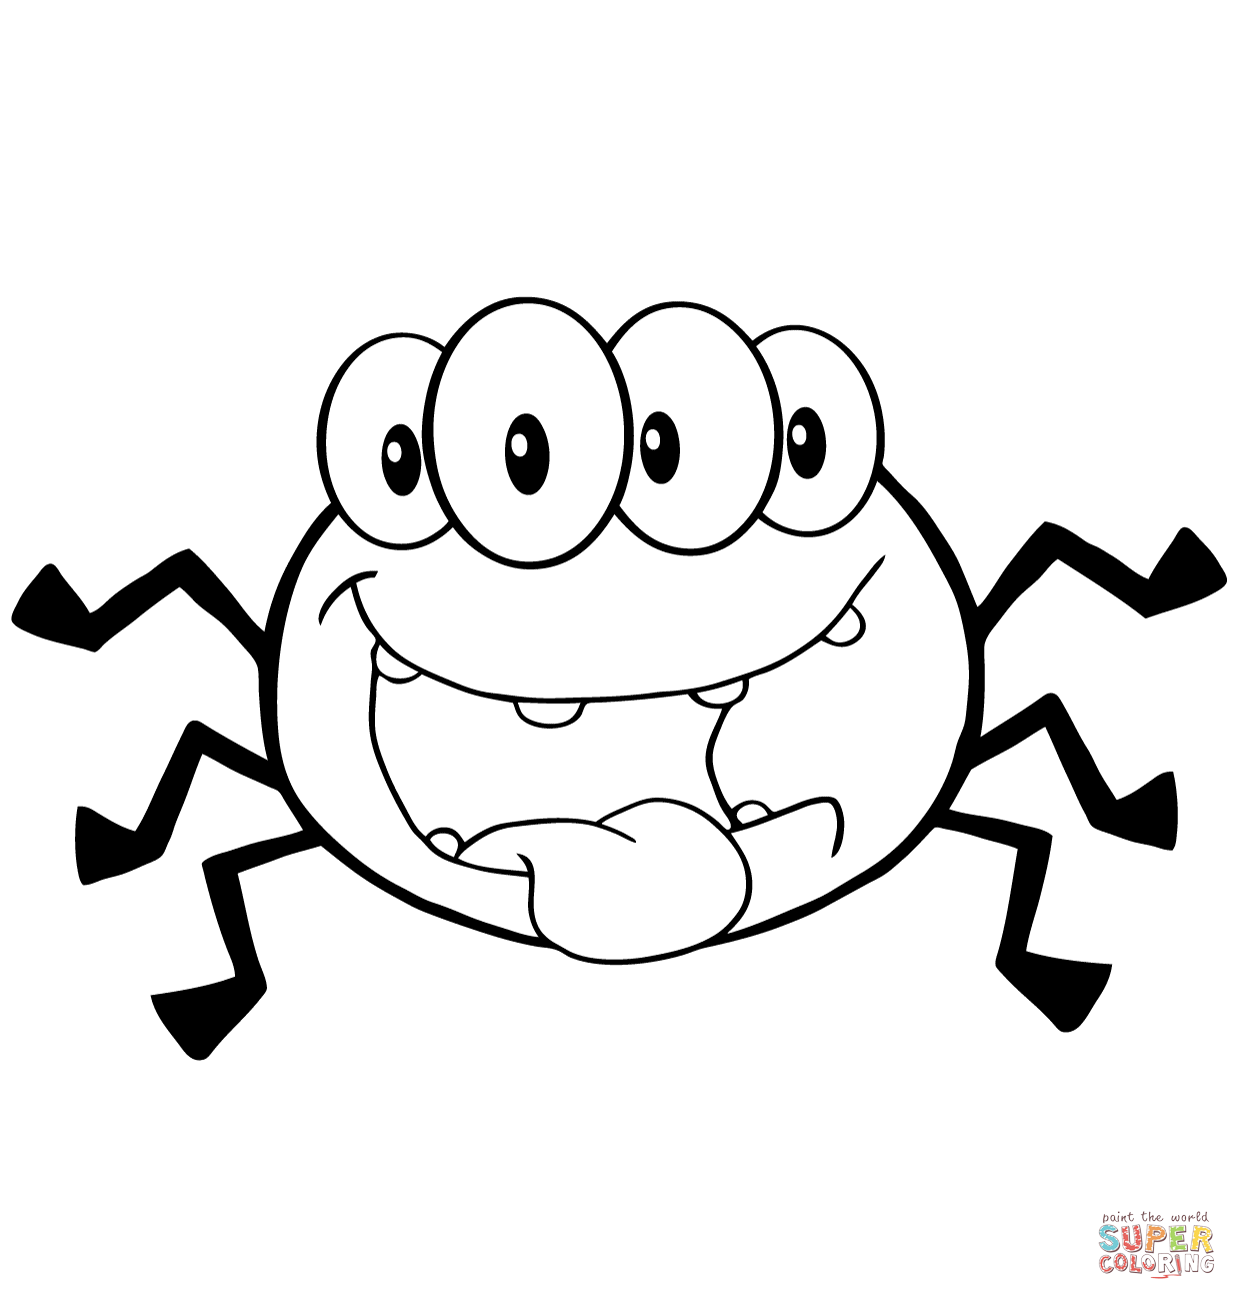 spider coloring page spiders coloring pages coloring home coloring page spider